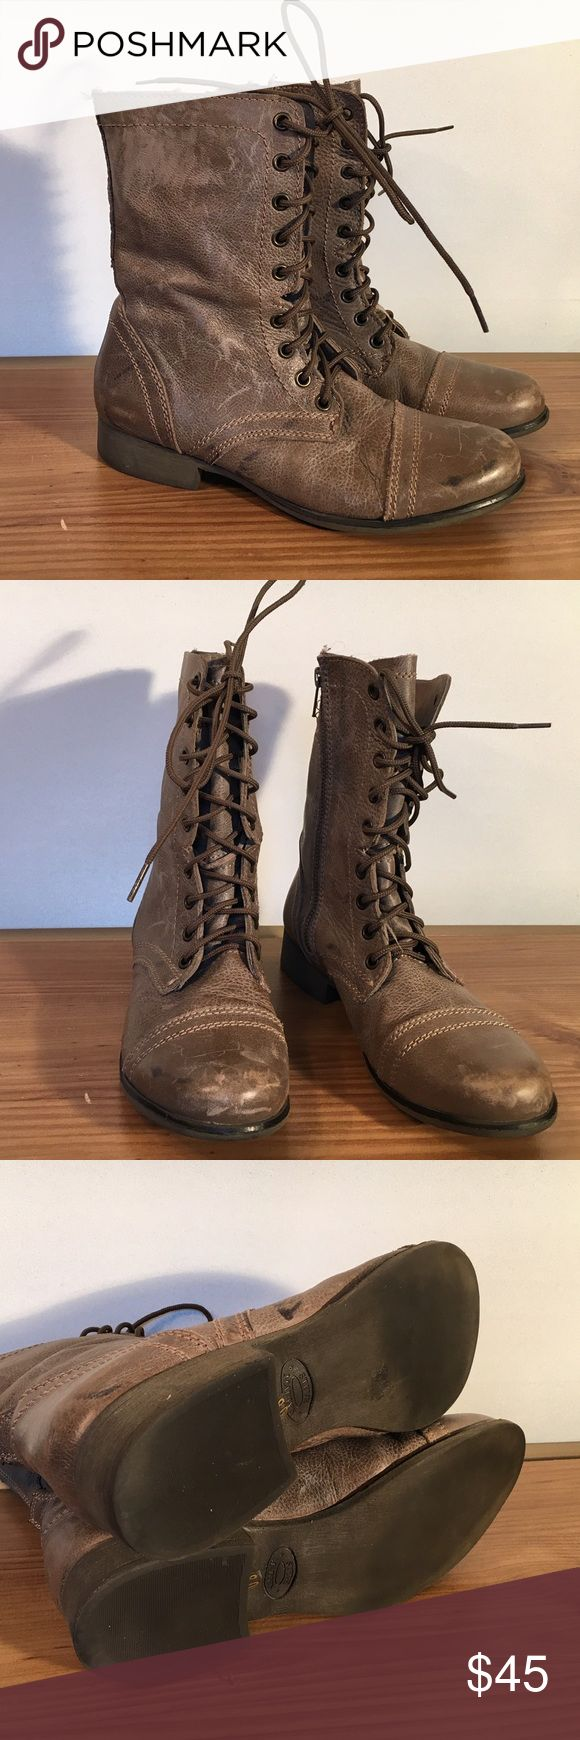 Steve Madden Troopa boots Steve Madden taupe colored distressed combat boots. These have some darker markings on the right boot as shown in cover picture..but these marks don't look out of place on this particular boot Steve Madden Shoes Combat & Moto Boots